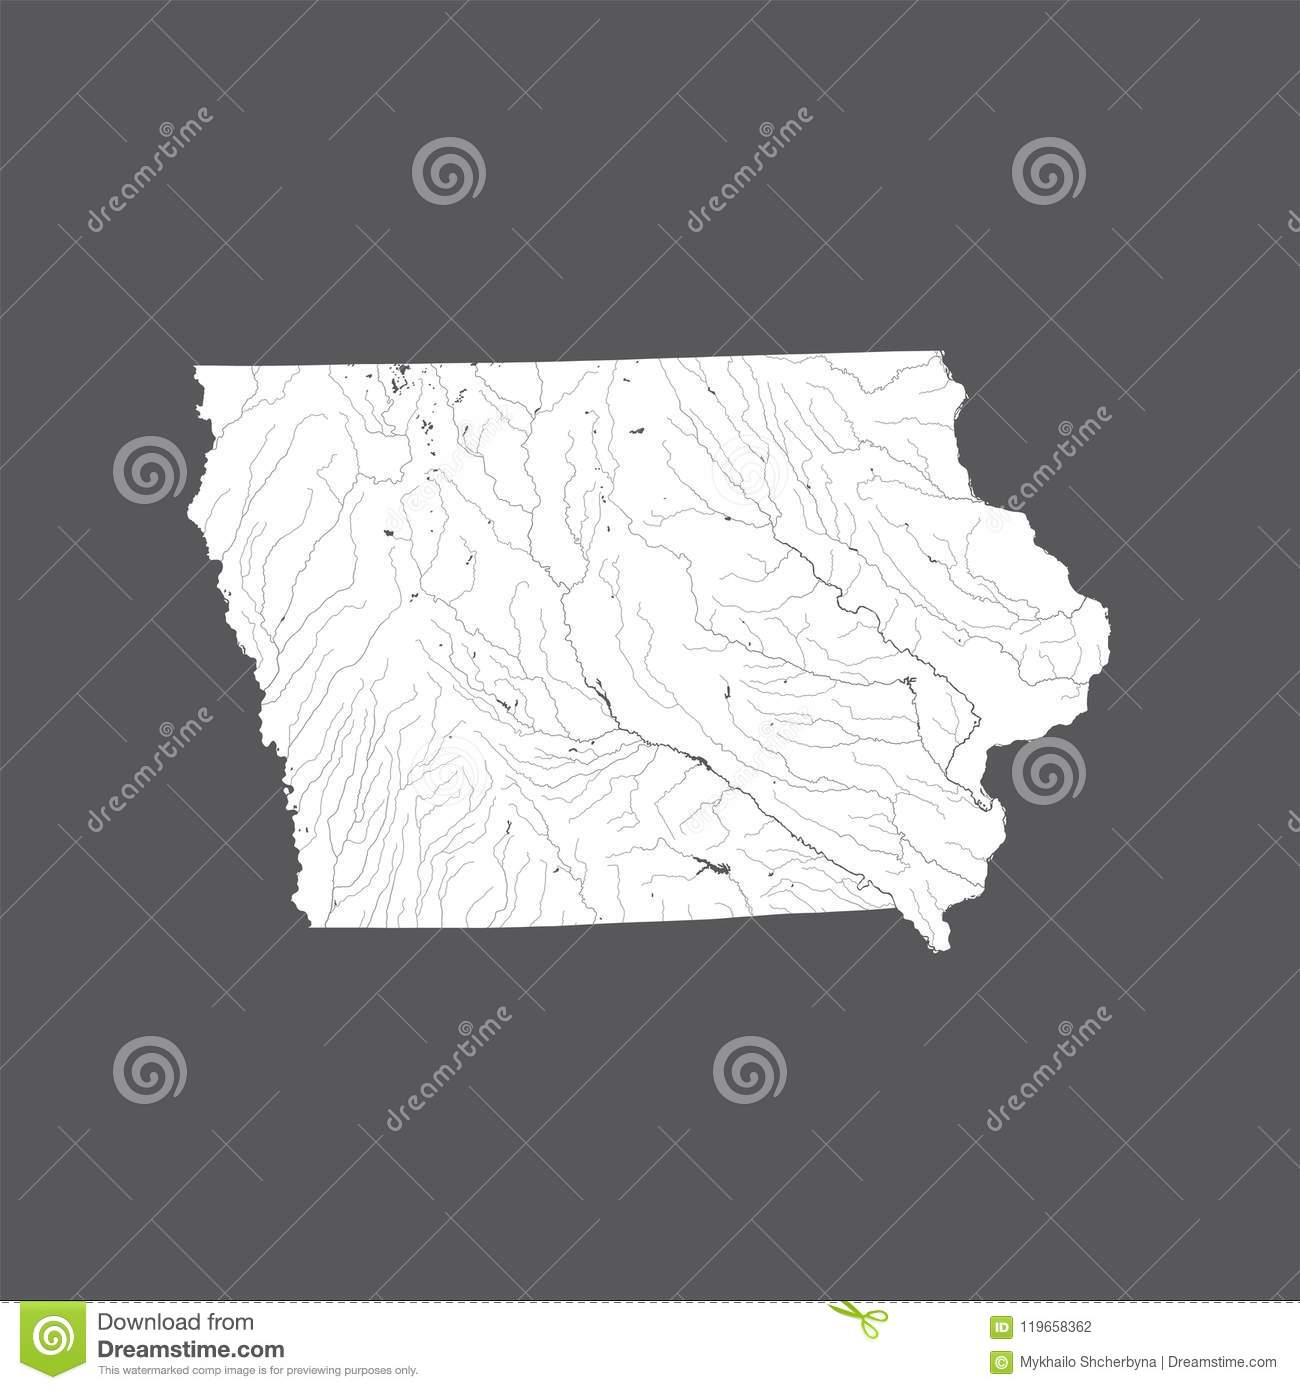 U Of Iowa Map.Map Of Iowa With Lakes And Rivers Stock Vector Illustration Of